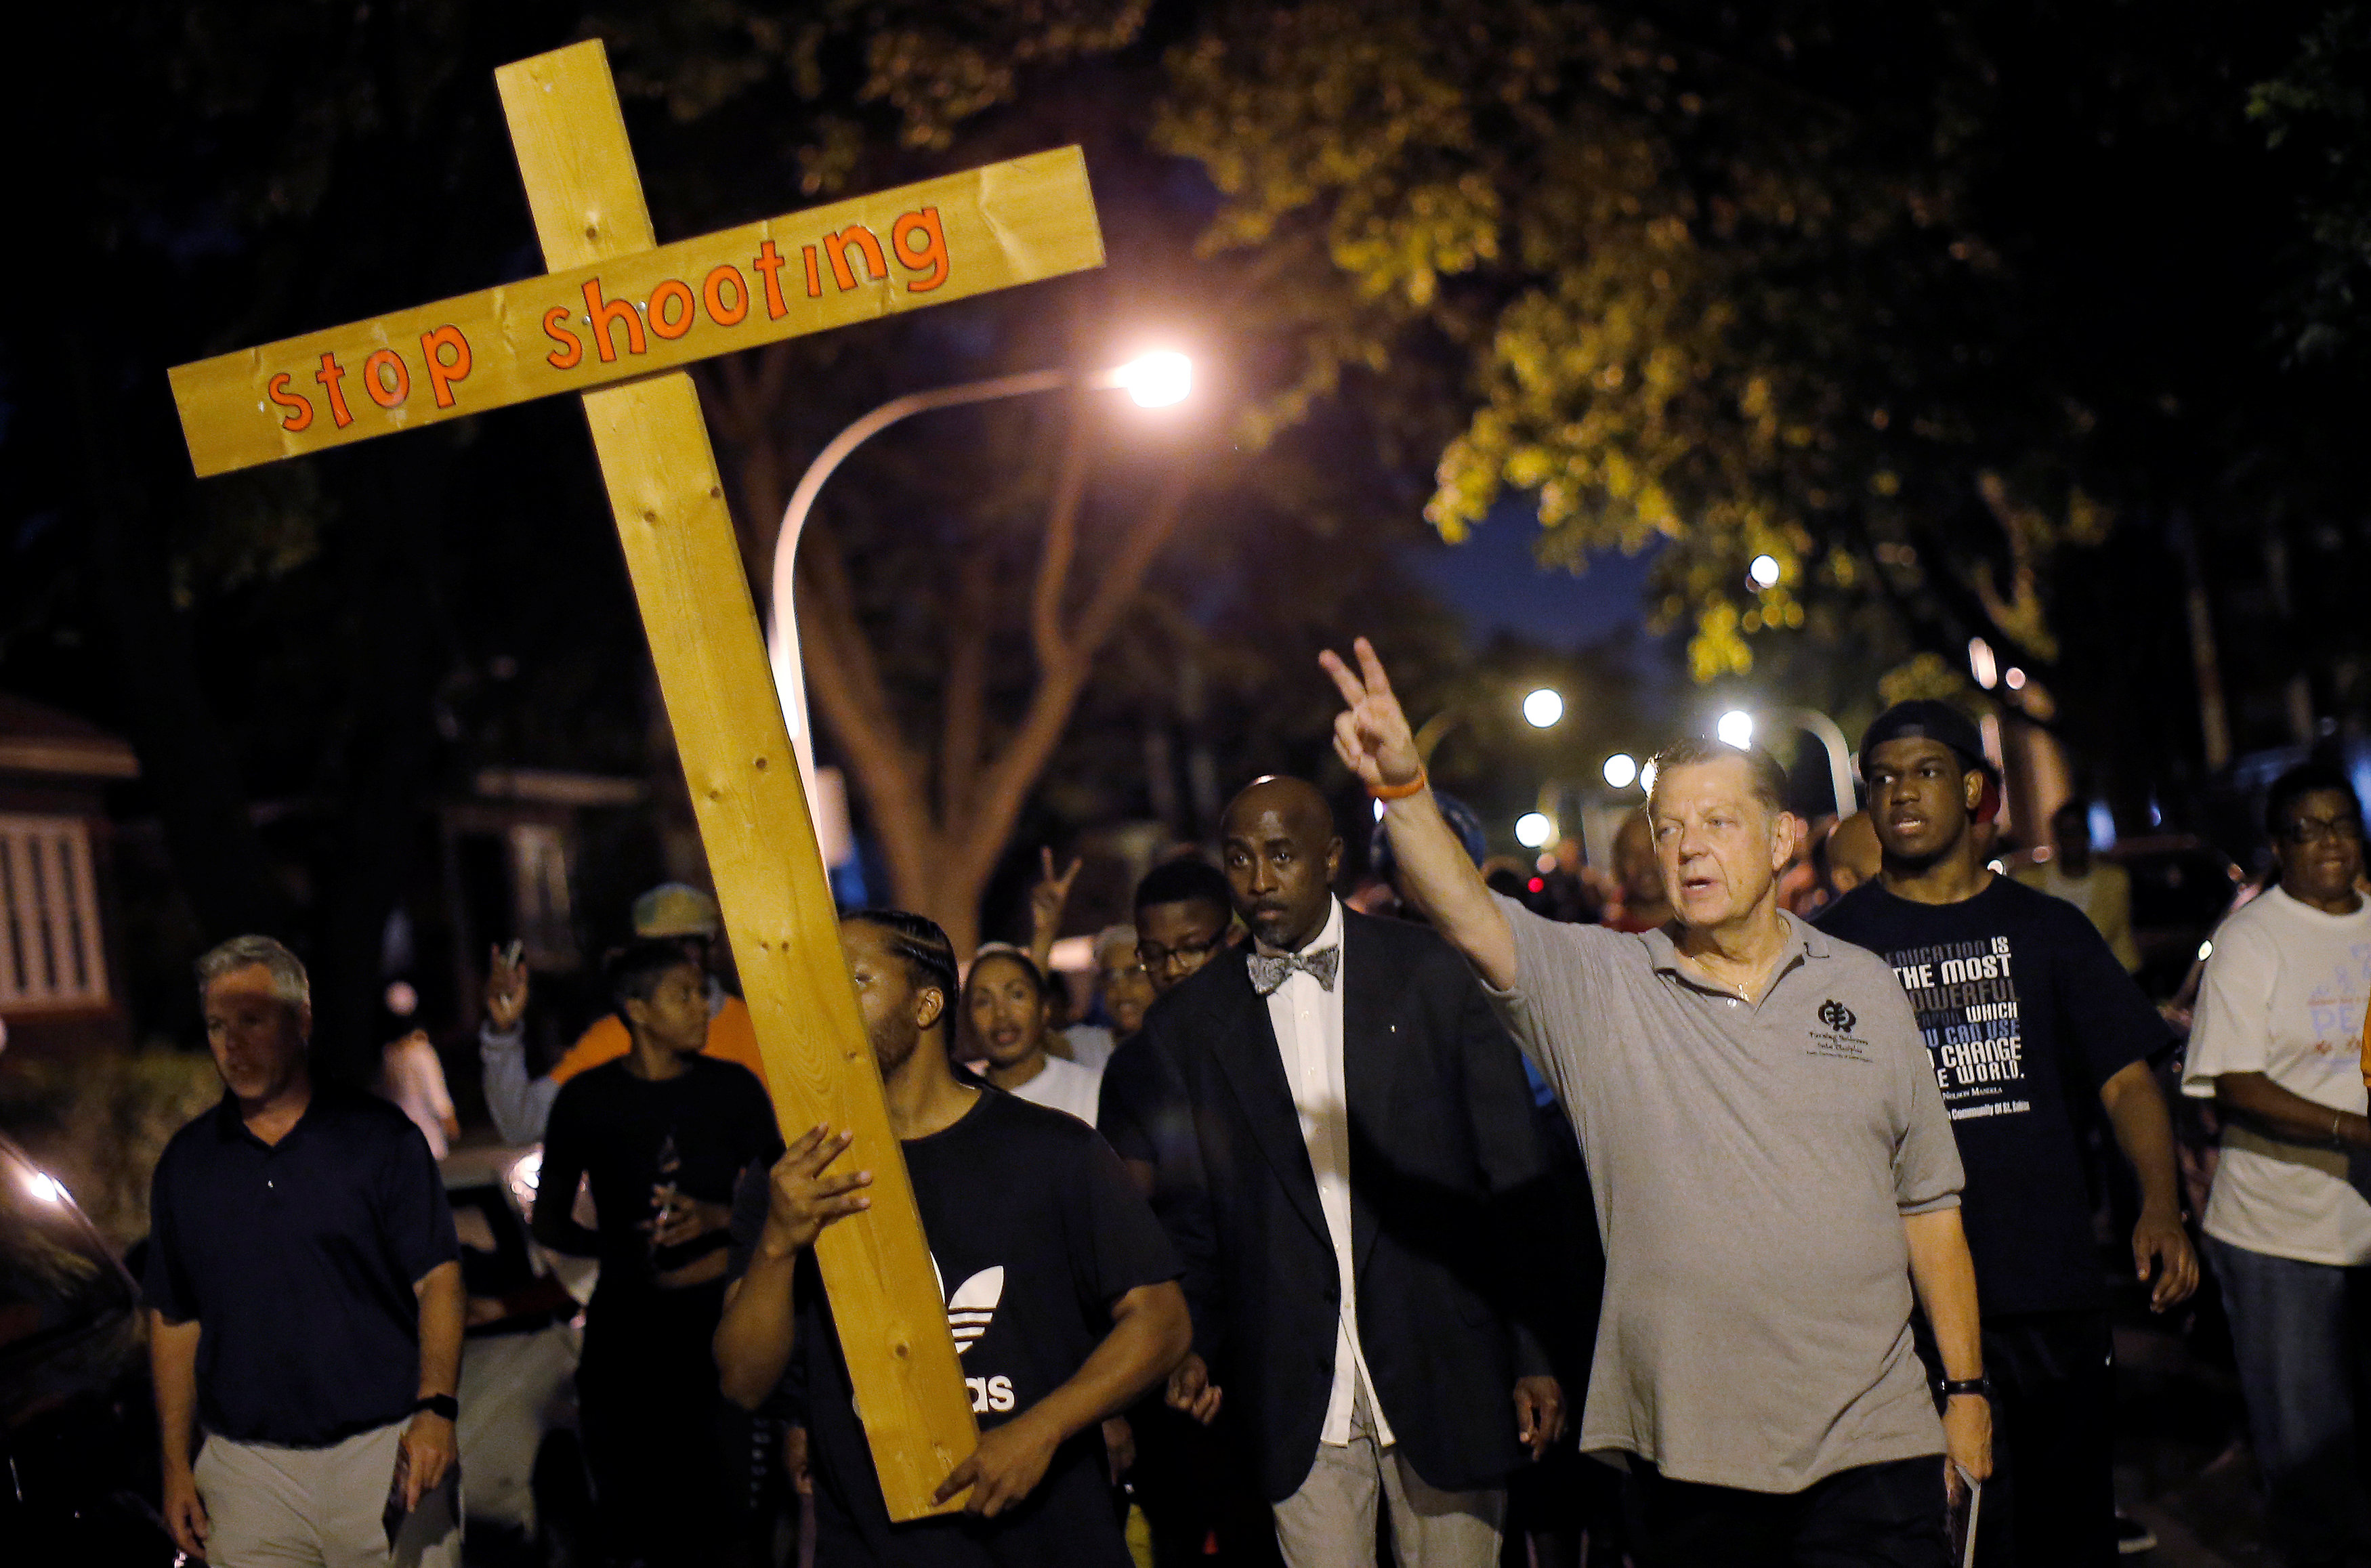 Father Michael Pfleger (3rd R) marches through the streets of a South Side neighborhood during a weekly night-time peace demonstration in Chicago, Illinois,